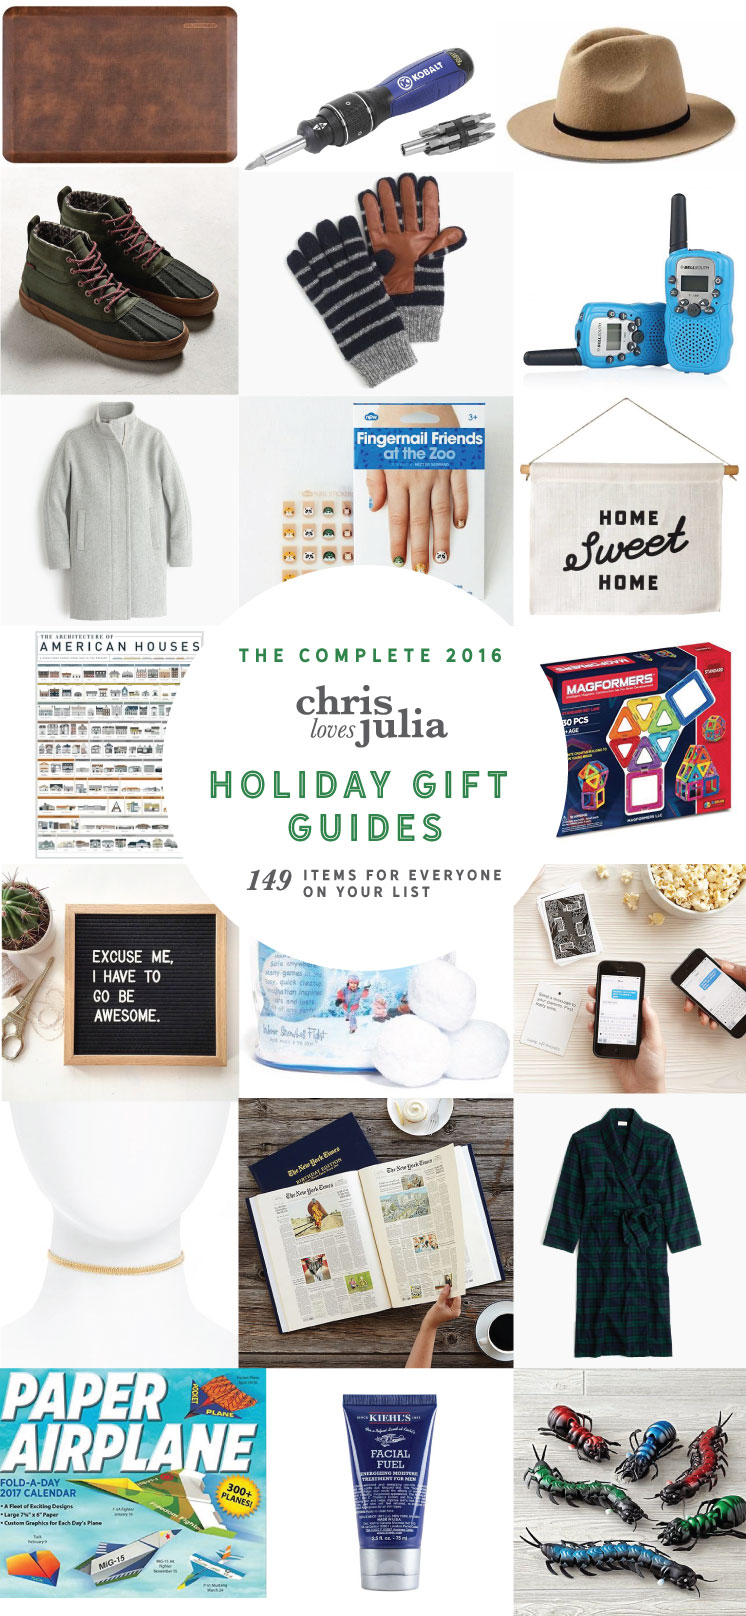 Gifts for every person on your list